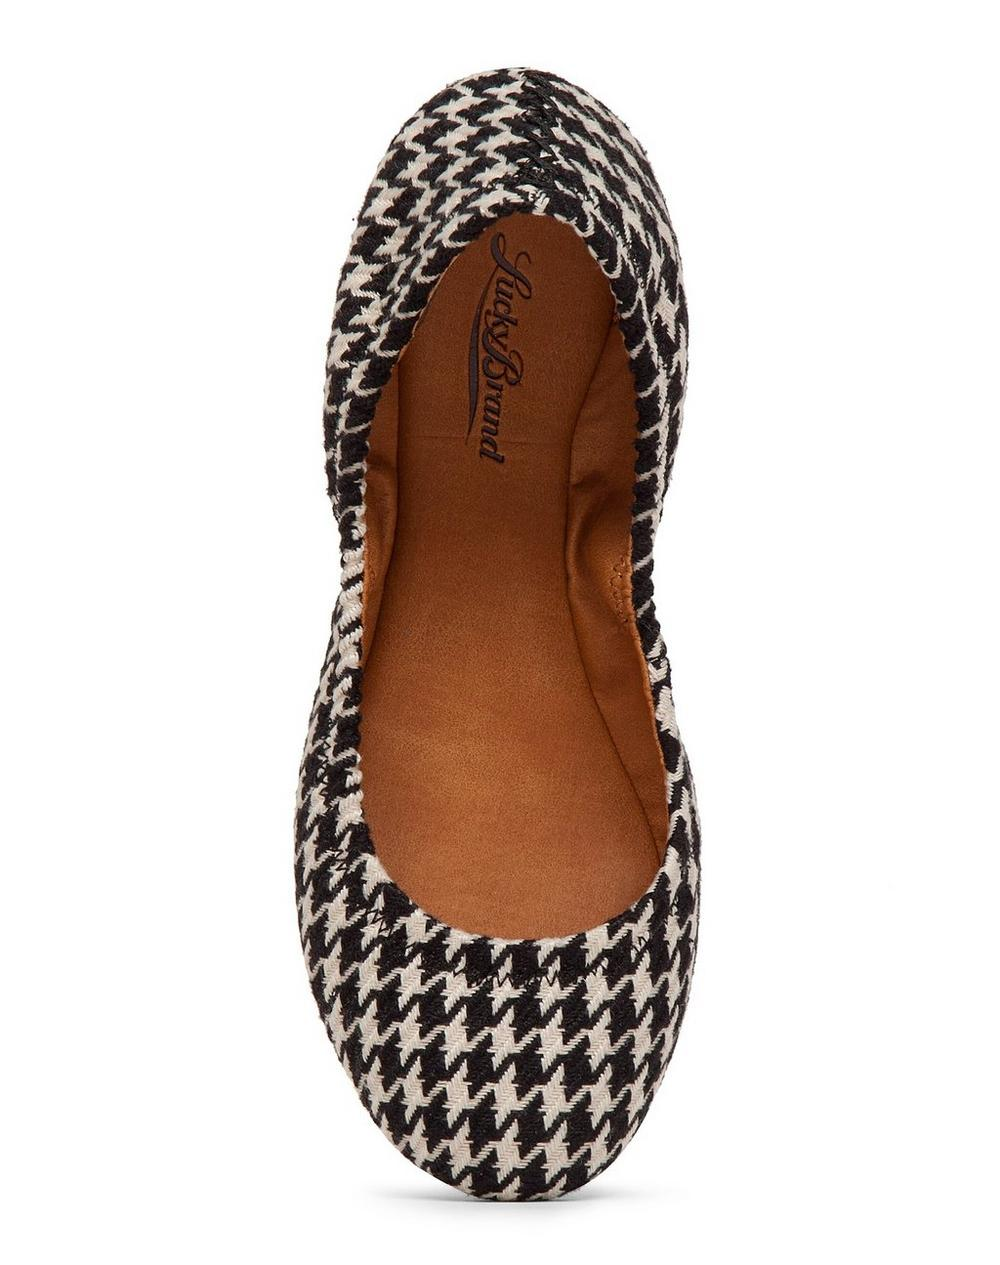 EMMIE LEATHER FLATS, image 6